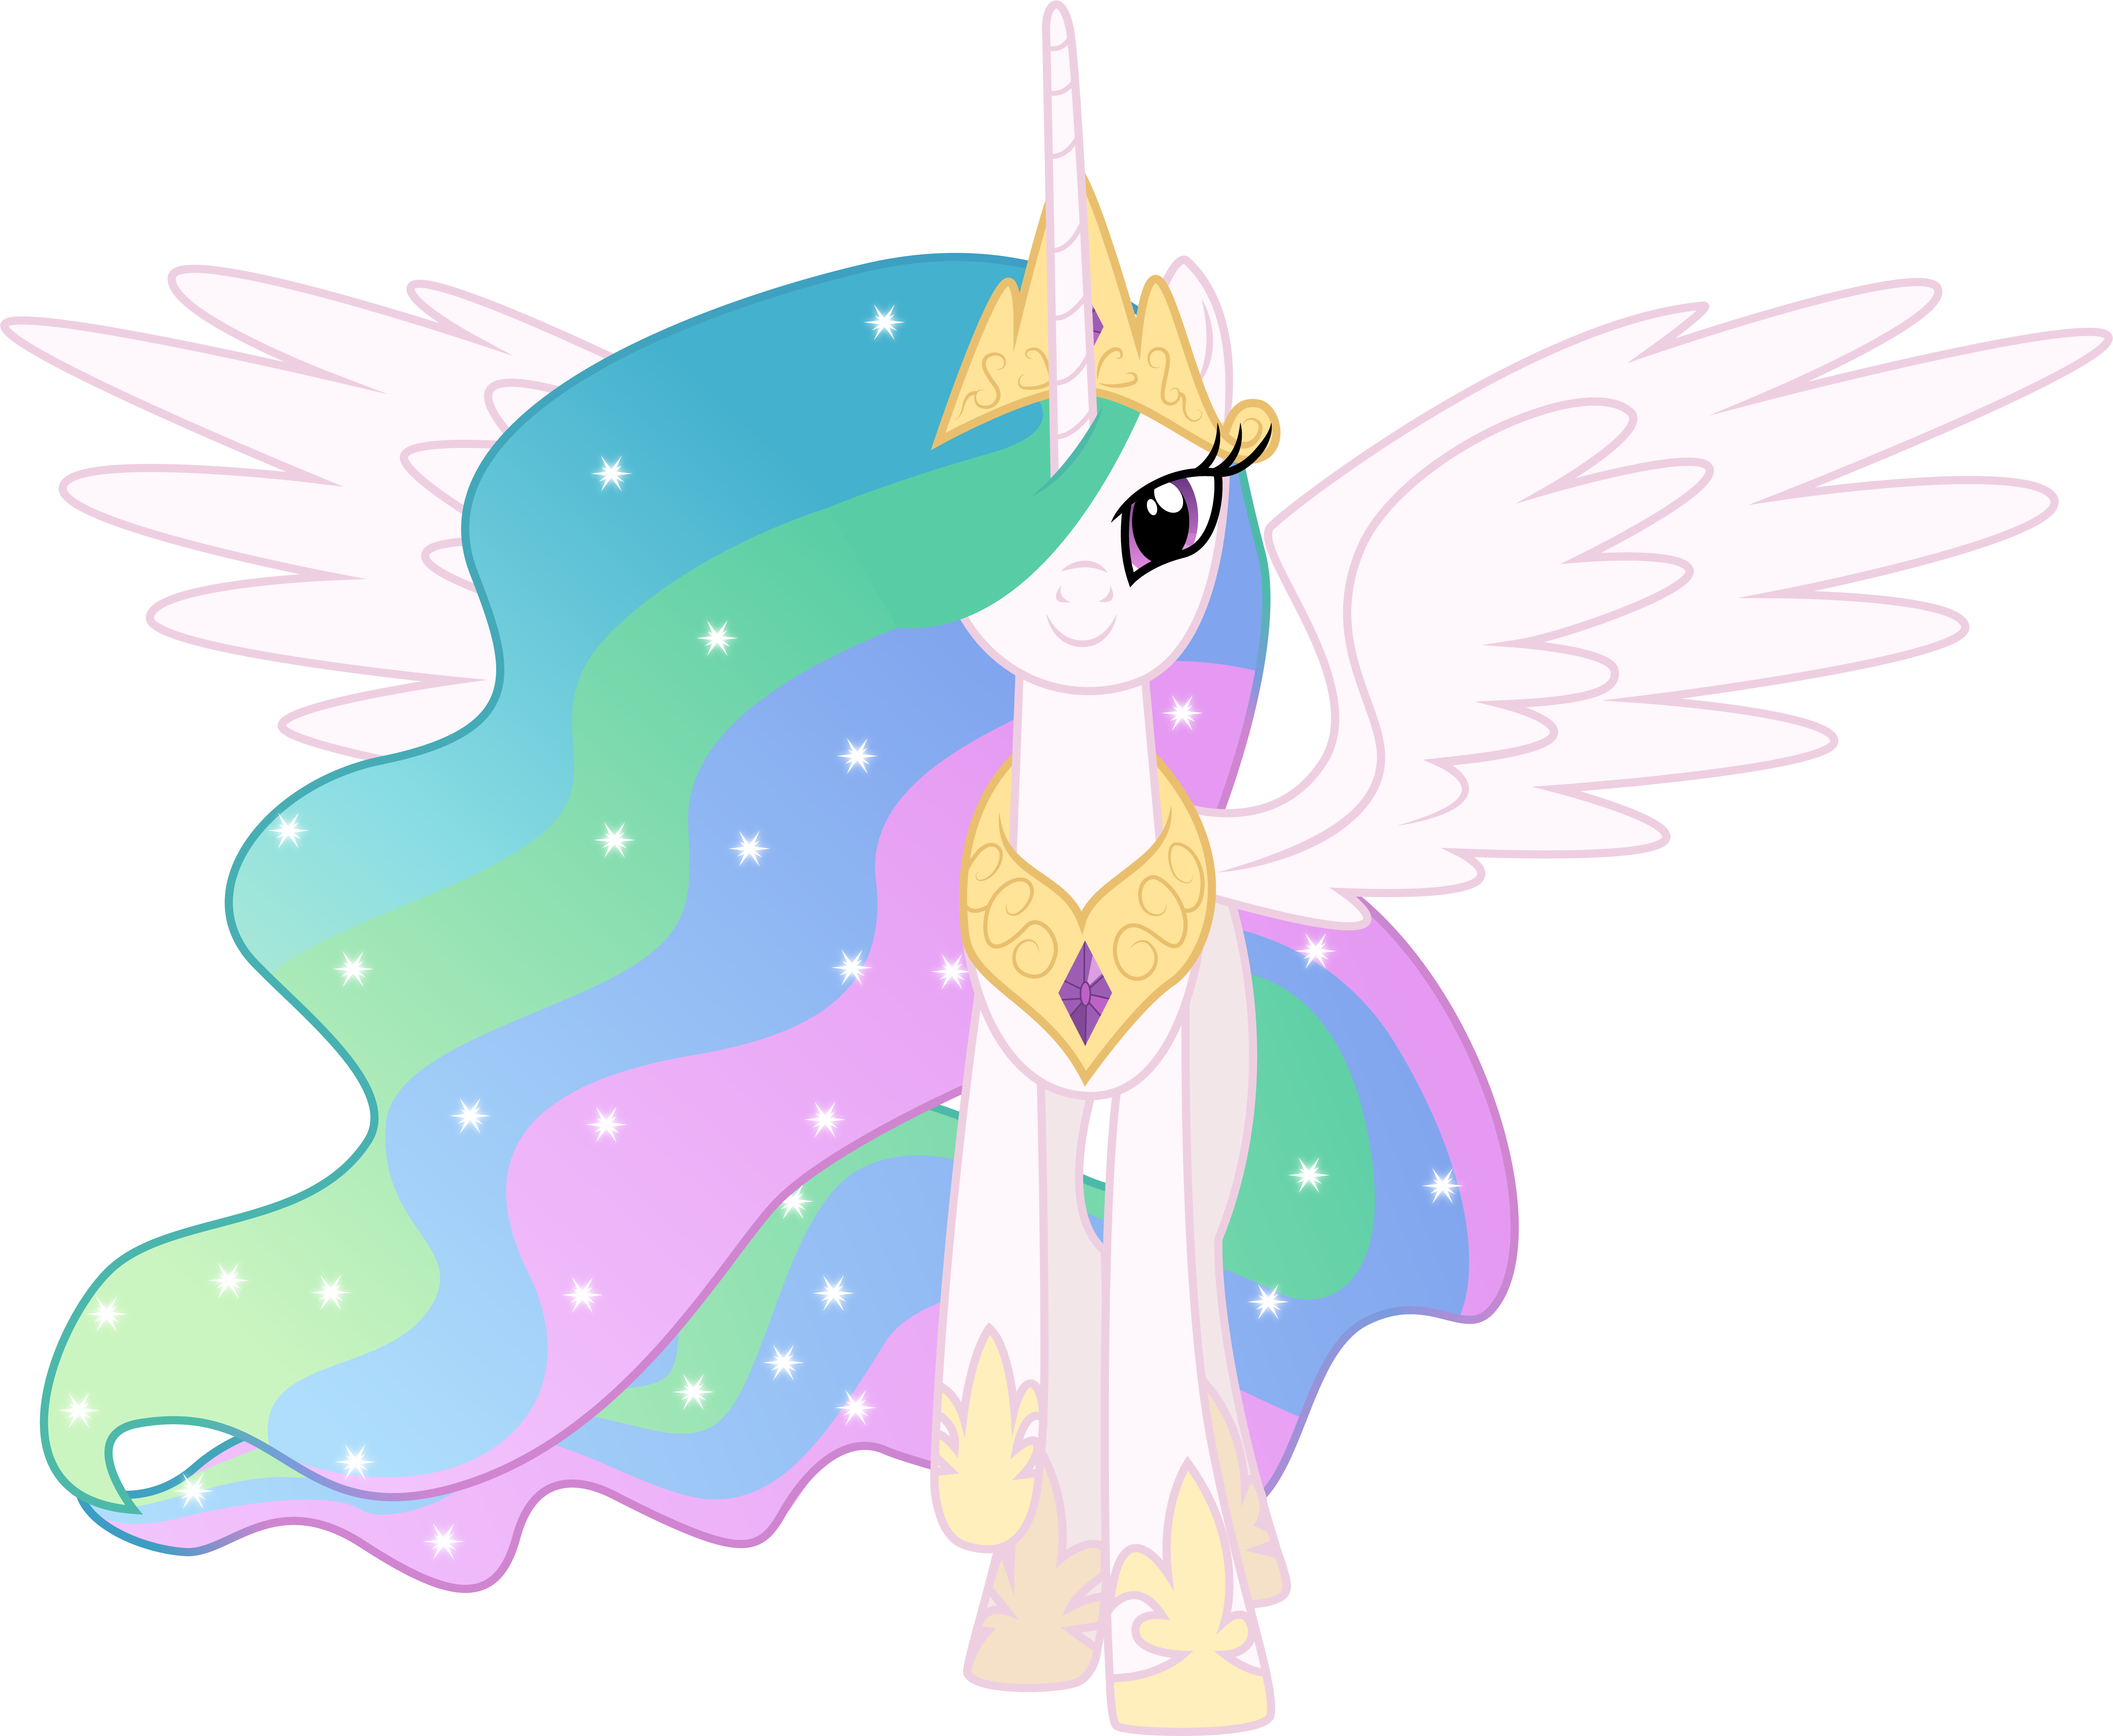 Princess Celestia Png Www Imgkid Com The Image Kid Has It A Picture Of Princess Celestia